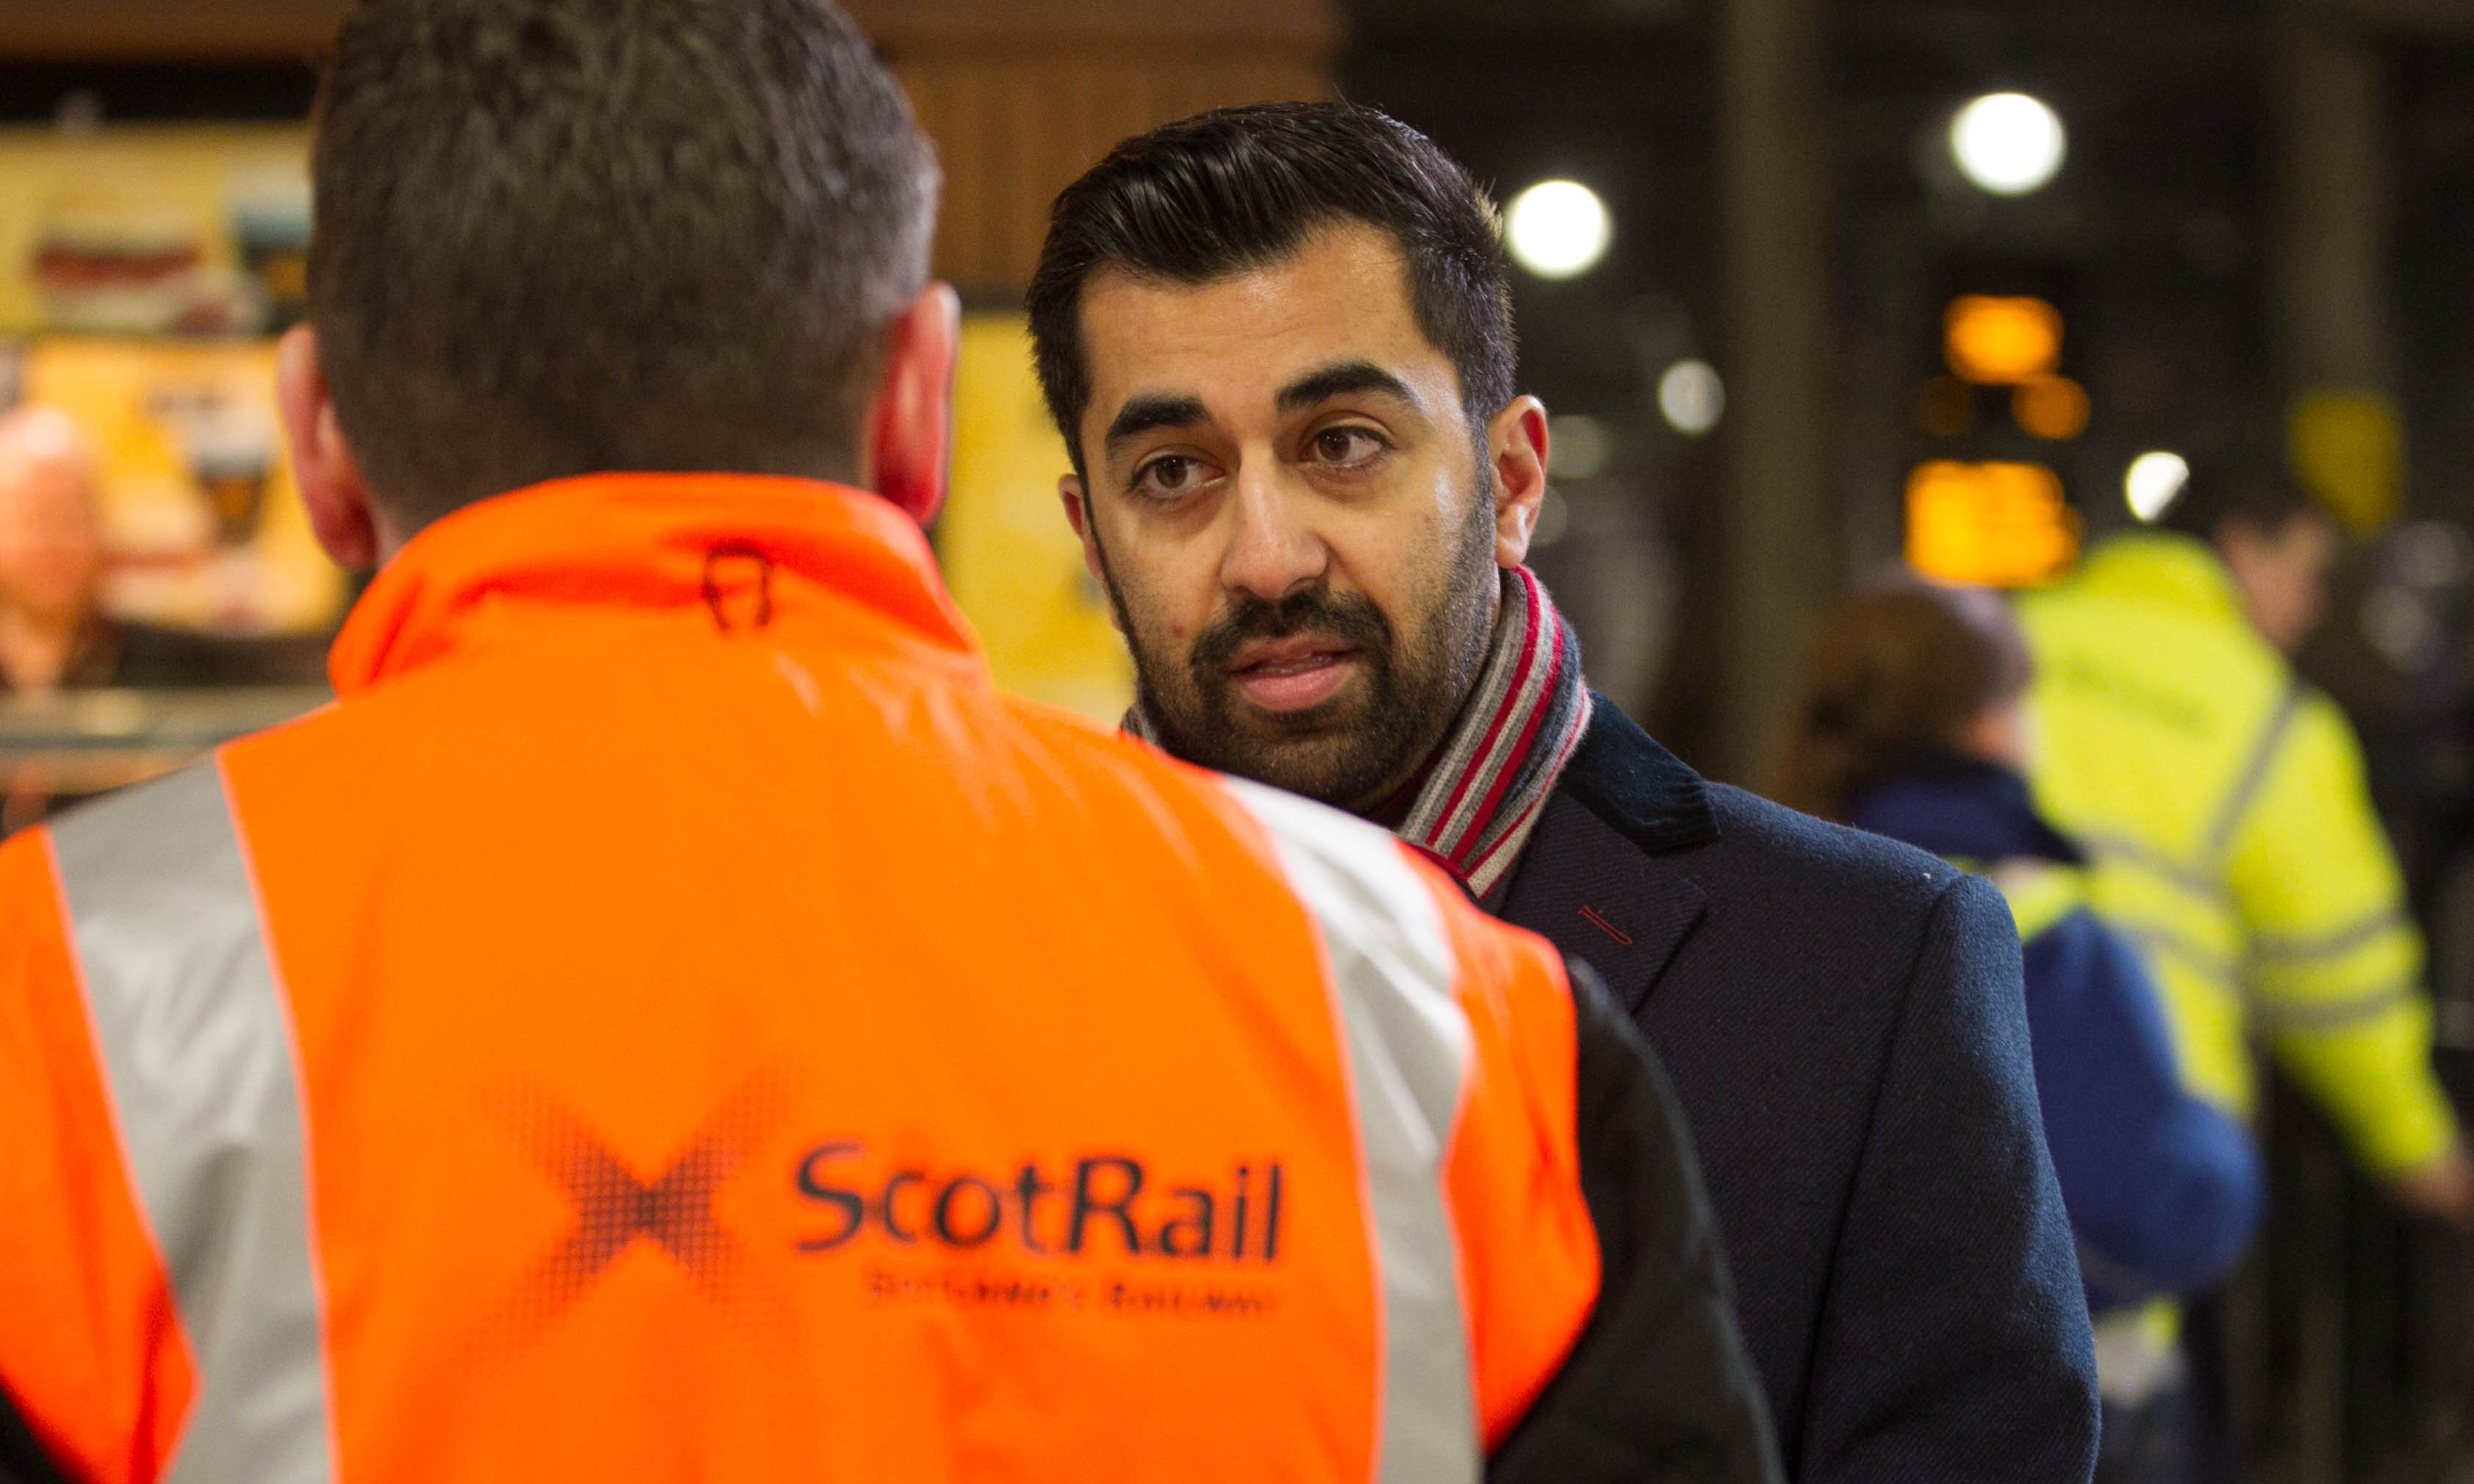 Transport Minister Humza Yousaf speaks with a ScotRail worker at Glasgow's Queen Street Station last week.